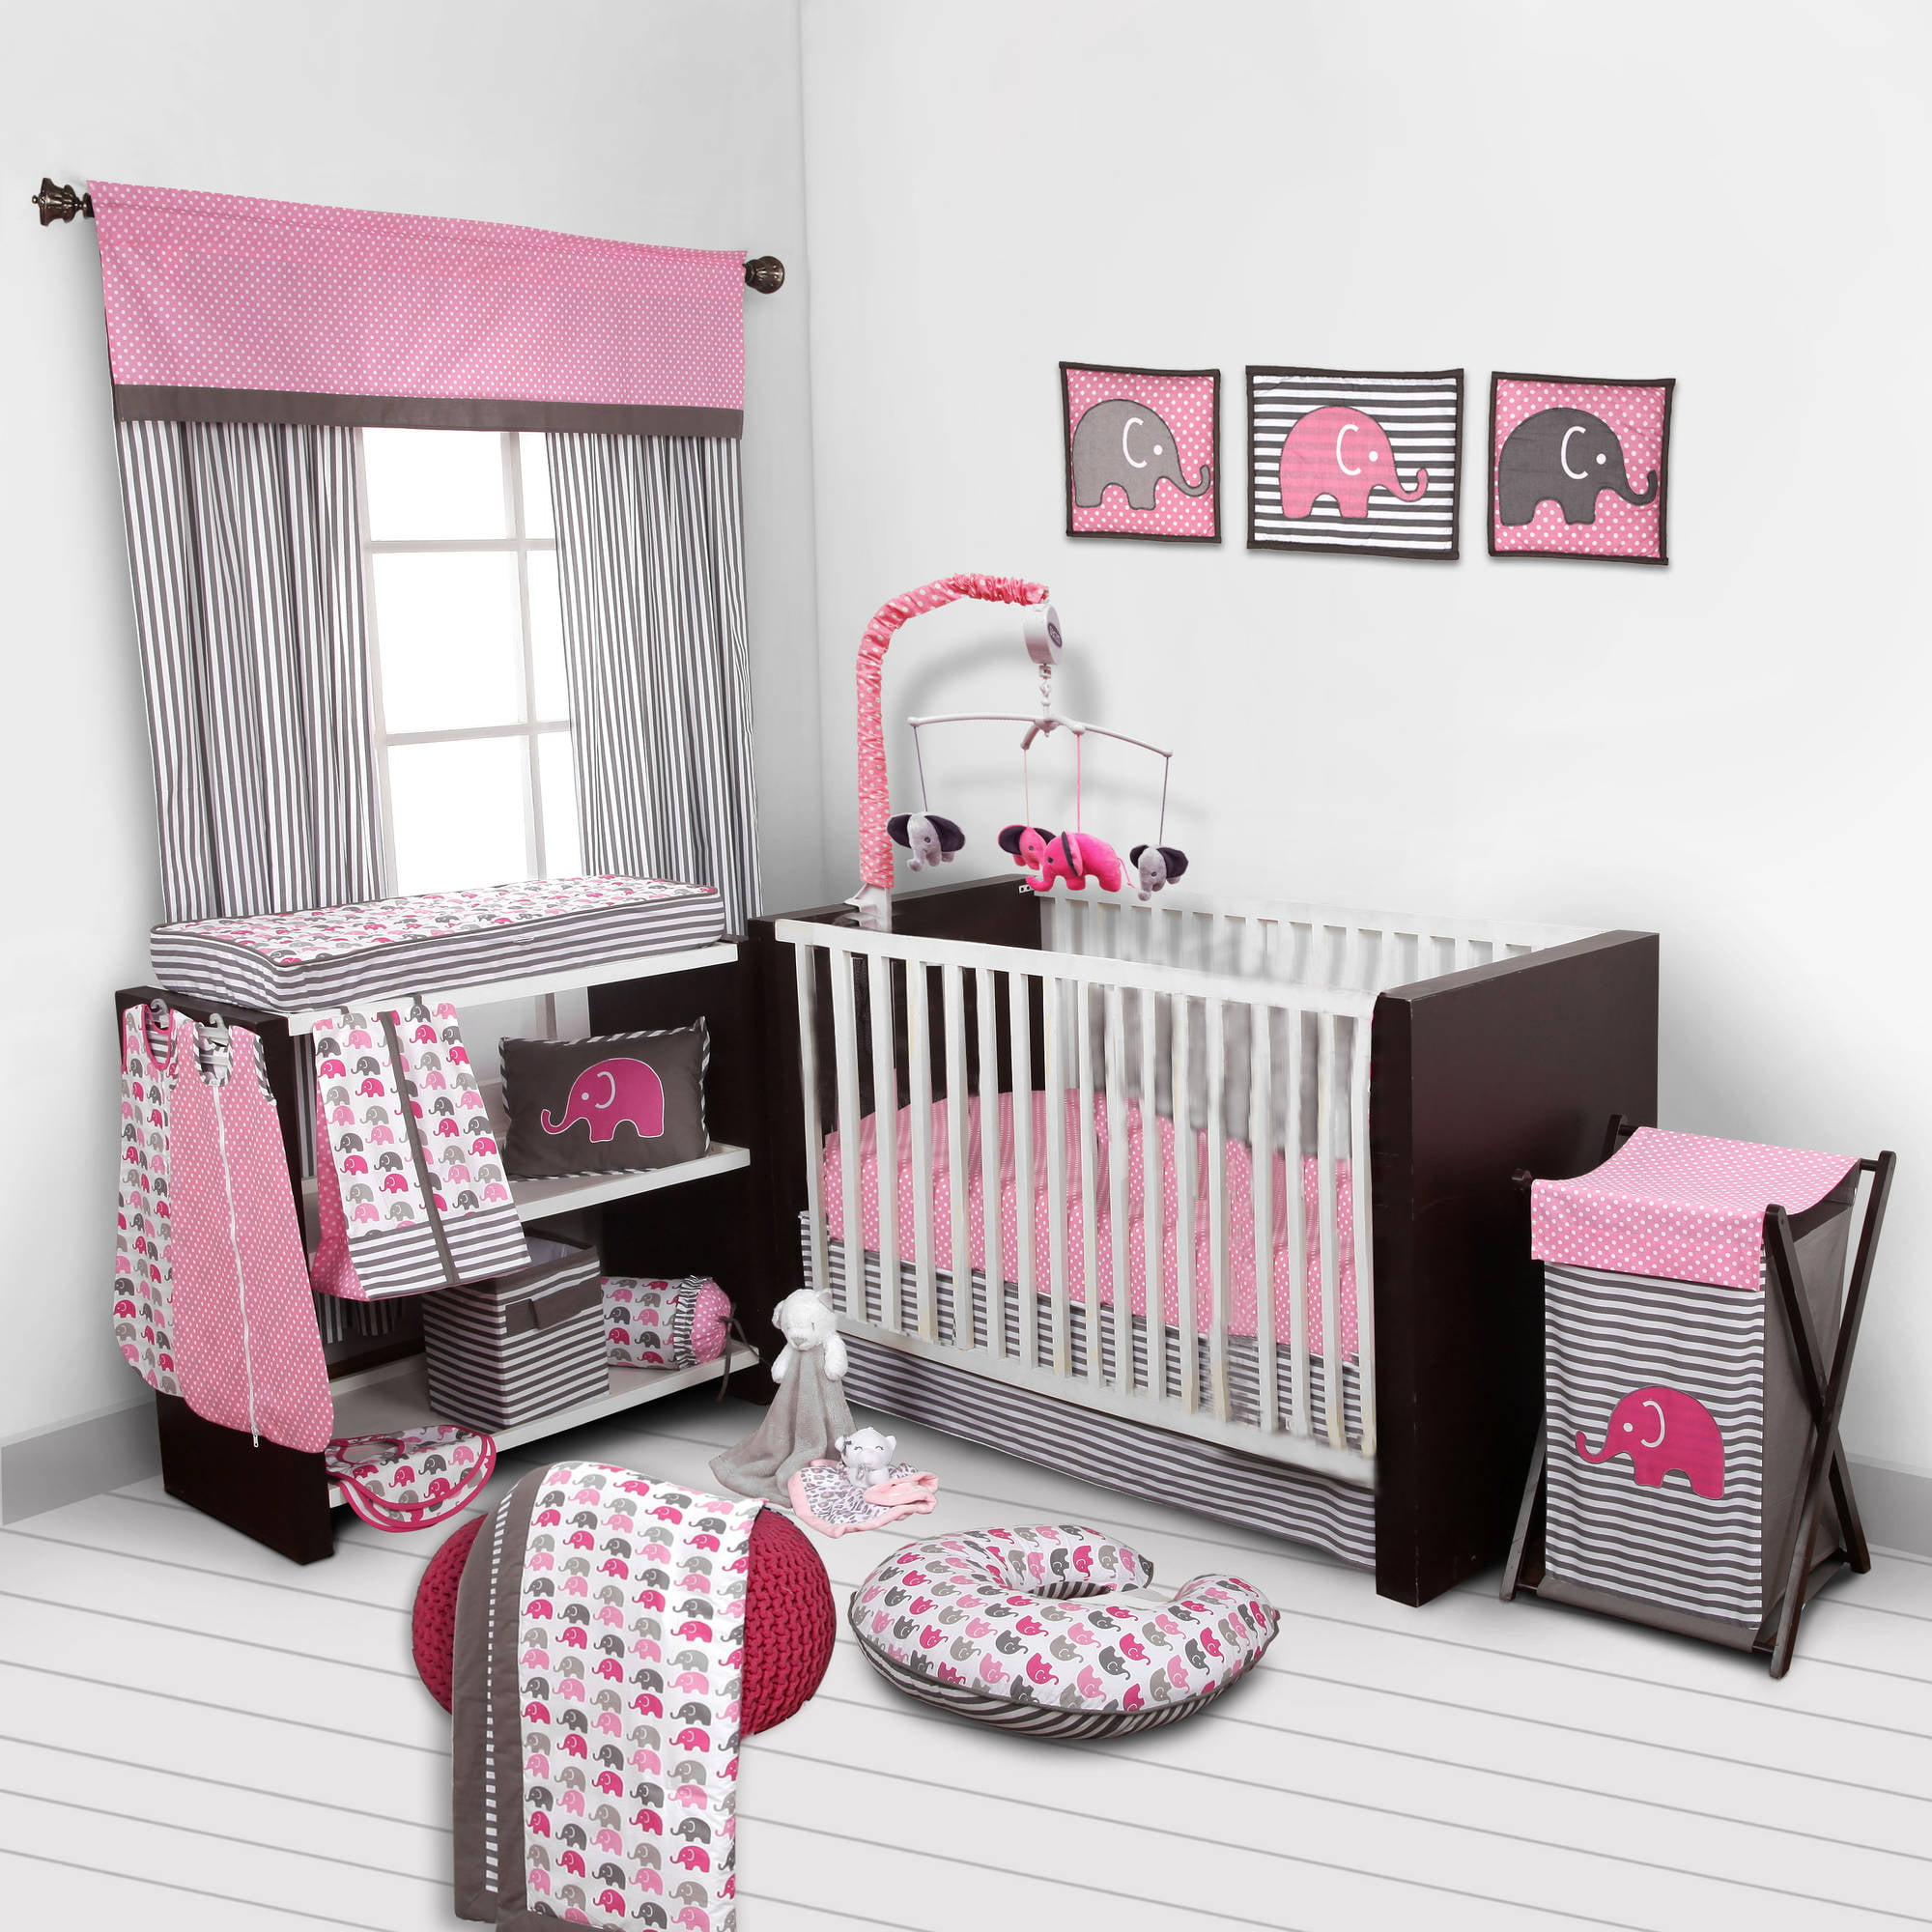 Bacati Elephants Pink Gray 10-Piece Nursery in a Bag Crib Bedding Set 100% Cotton Percale Girls Crib Bedding... by Bacati